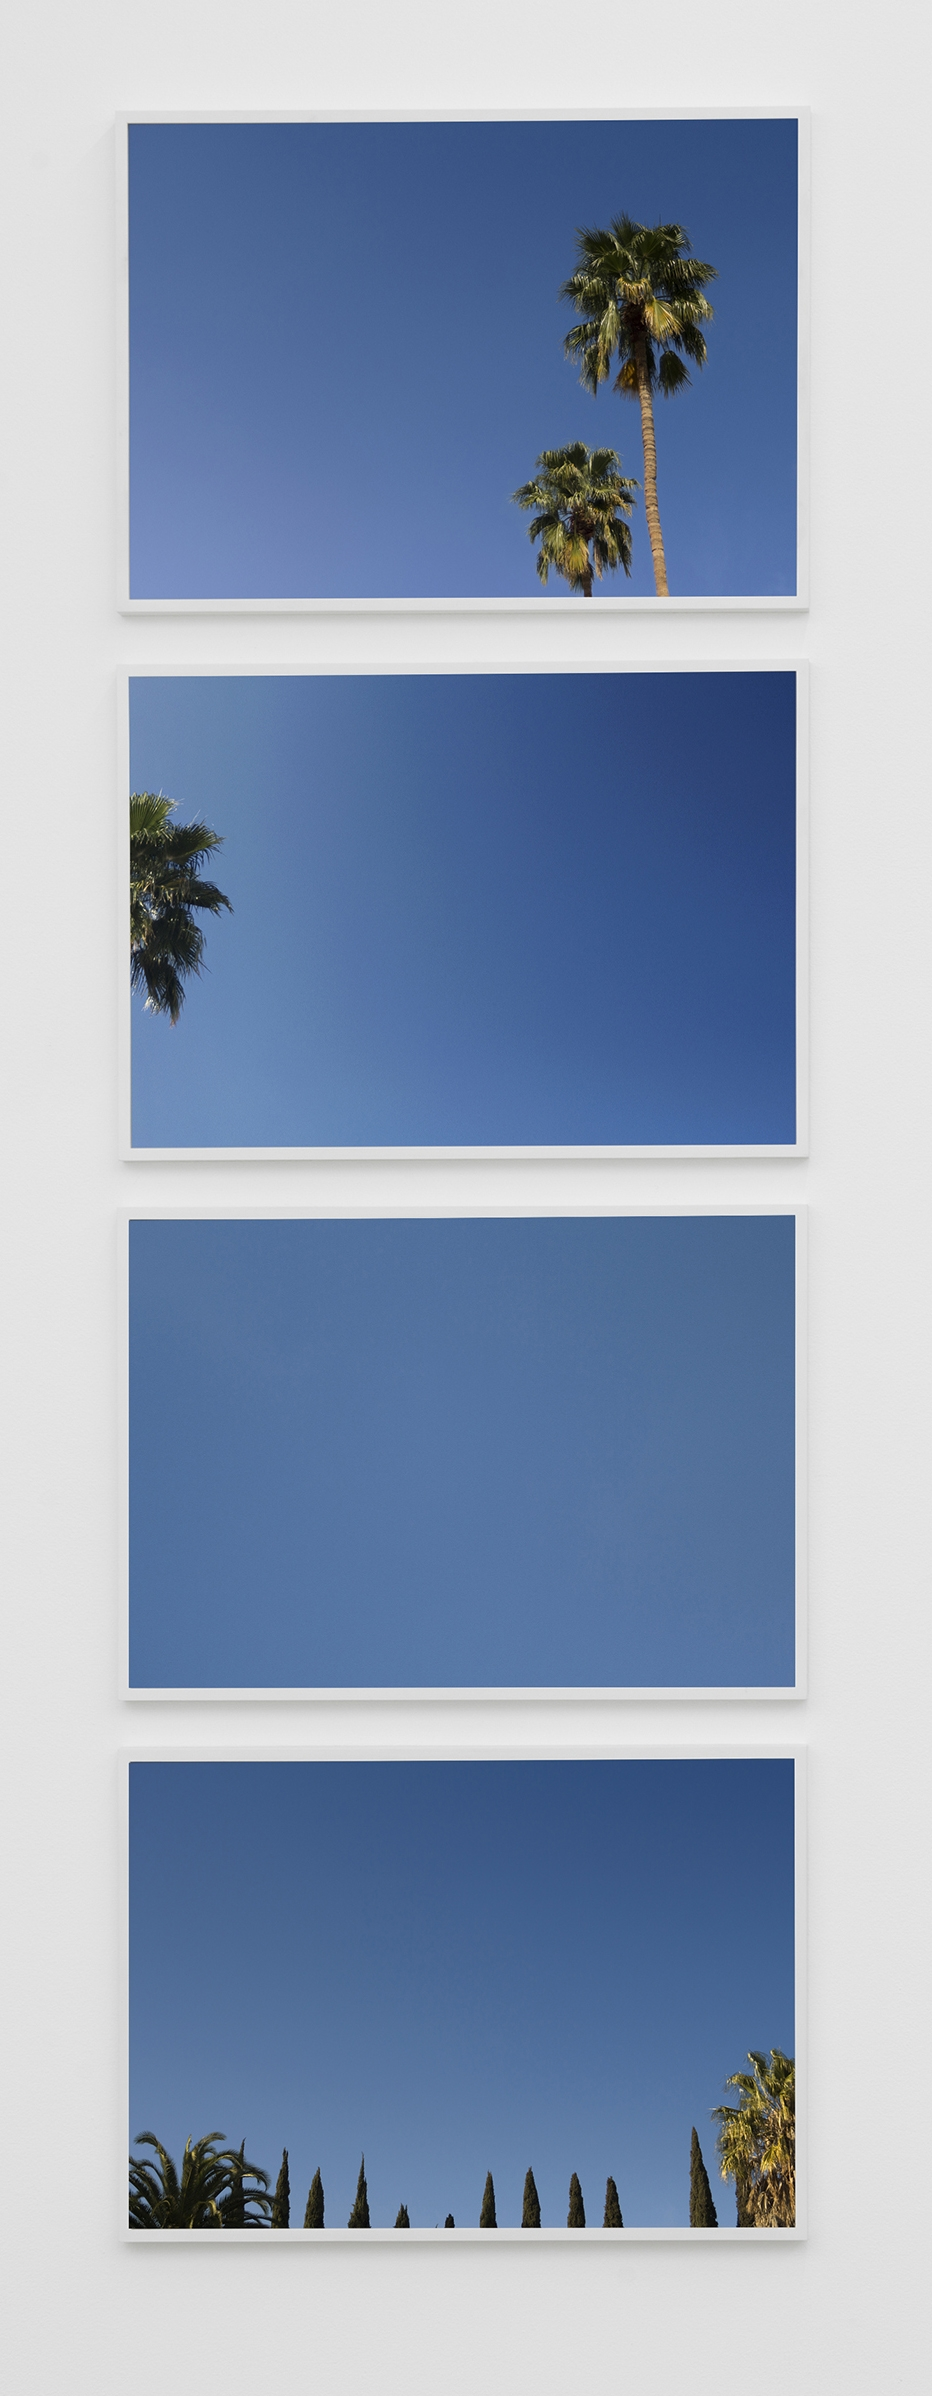 Maria Anwander  Baldessari Without Balls,  2014 Series of four fine art prints, each 71 x 50 cm Edition of 3 + 2AP